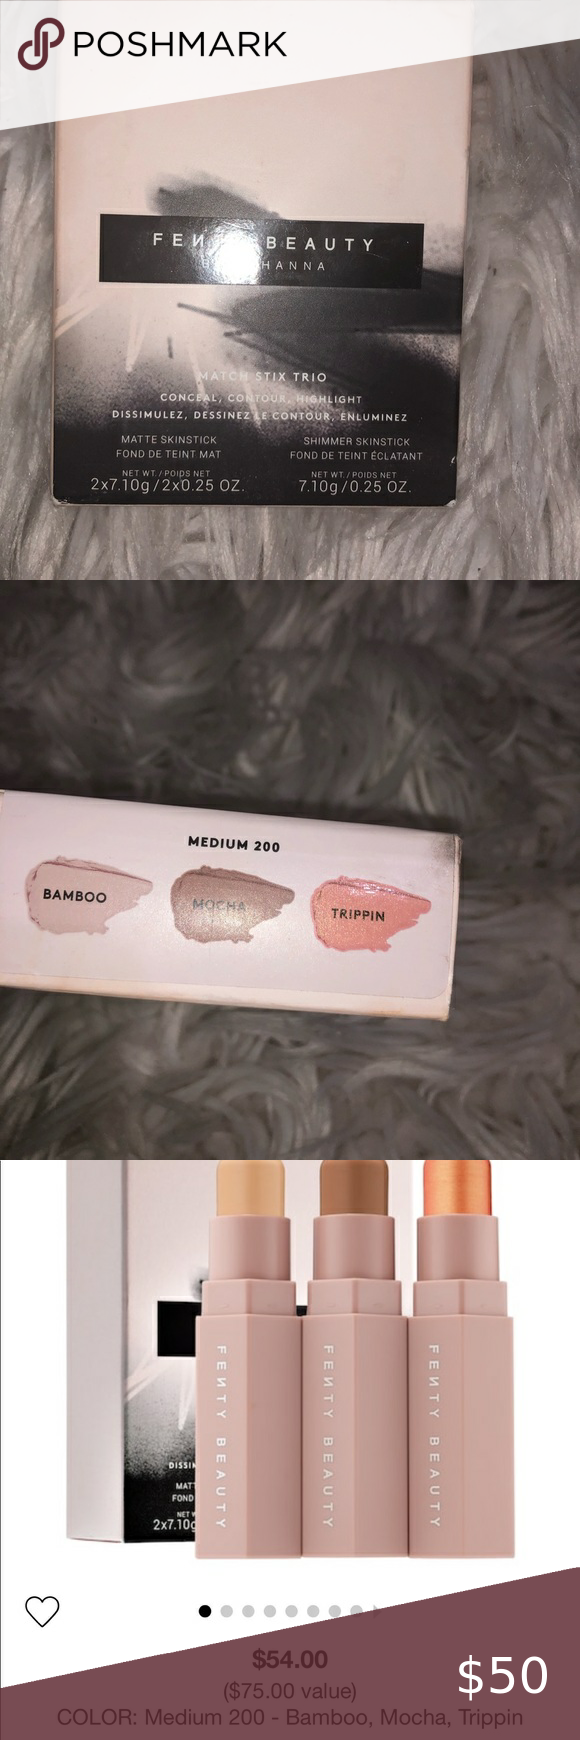 FENTY beauty contour match stix FENTY beauty contour match stix New Mocha trippin bamboo exclusive Smooth concealer Fenty Beauty Makeup Source by ashluv123416 Beauty